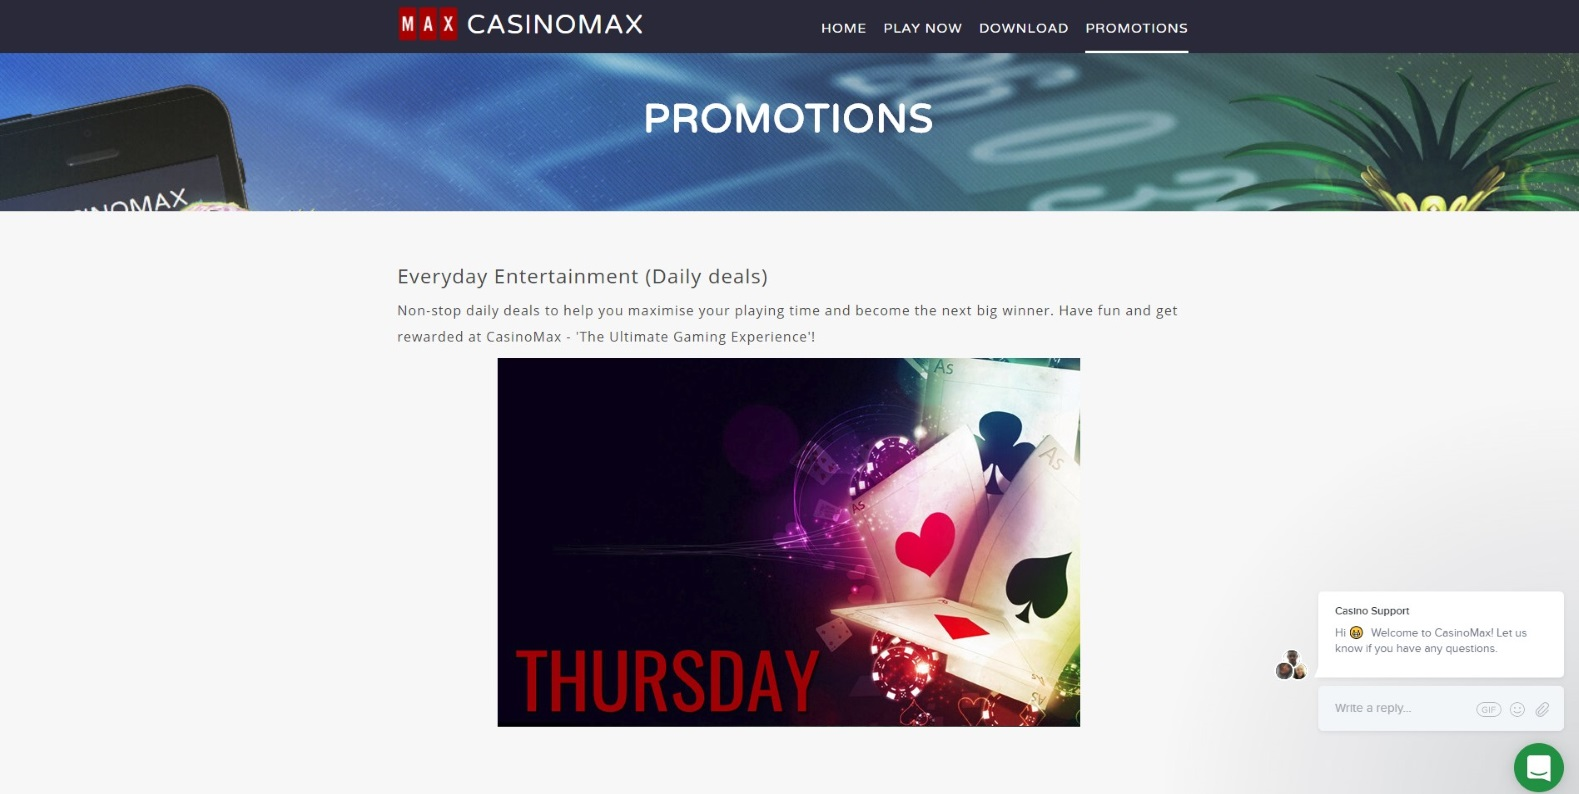 CasinoMax Casino - Find All Promotions